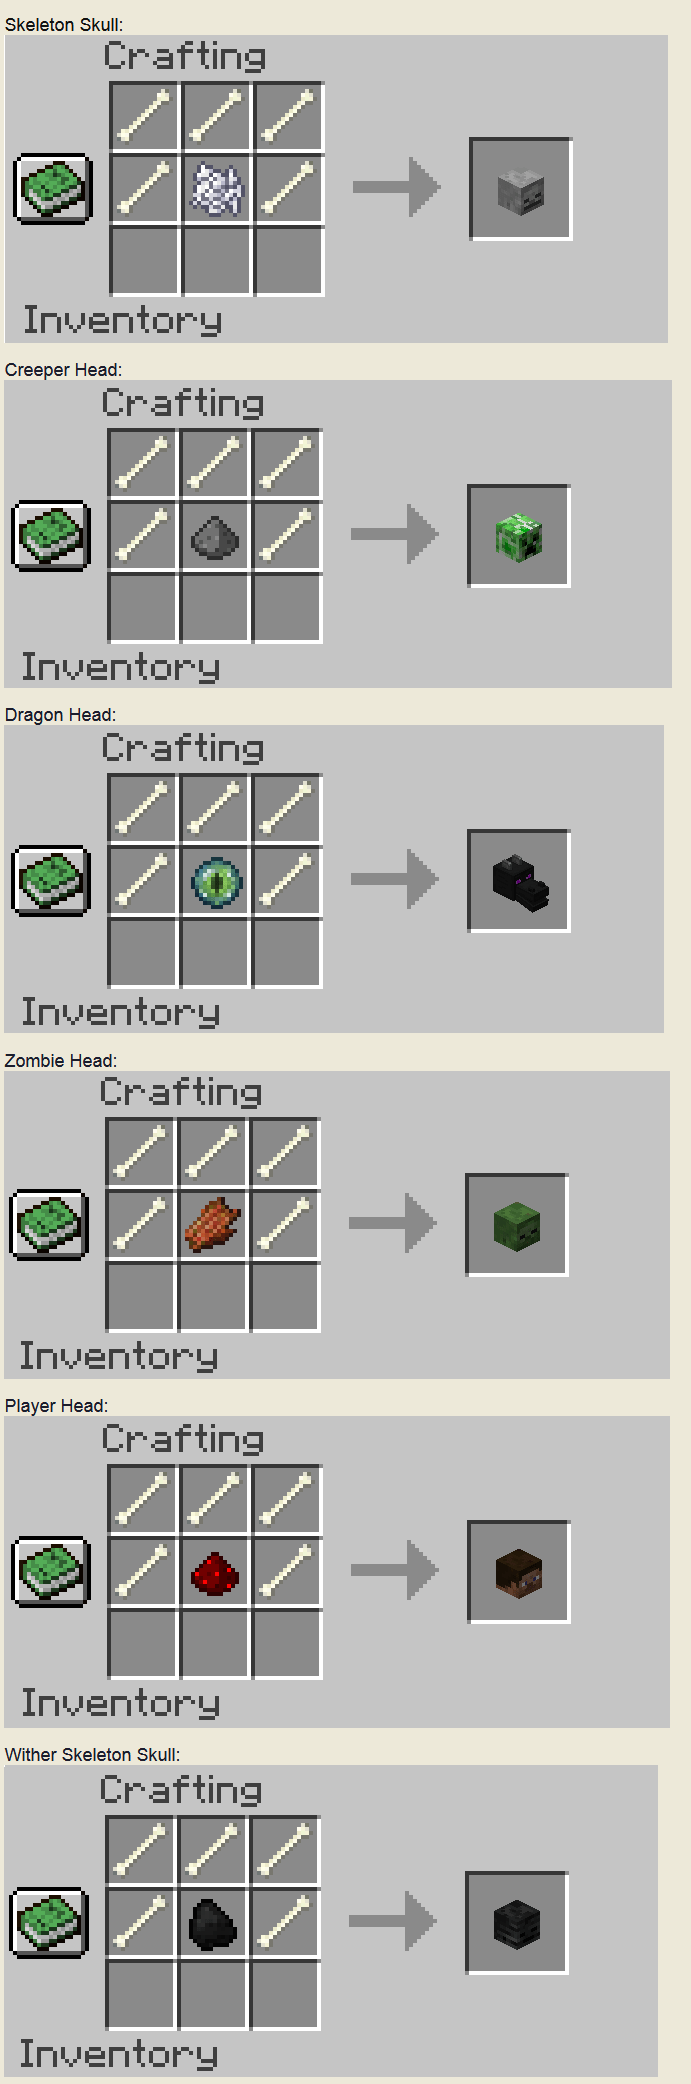 Inventory Pets 1 7 10 Crafting Recipes | Treeofflife org